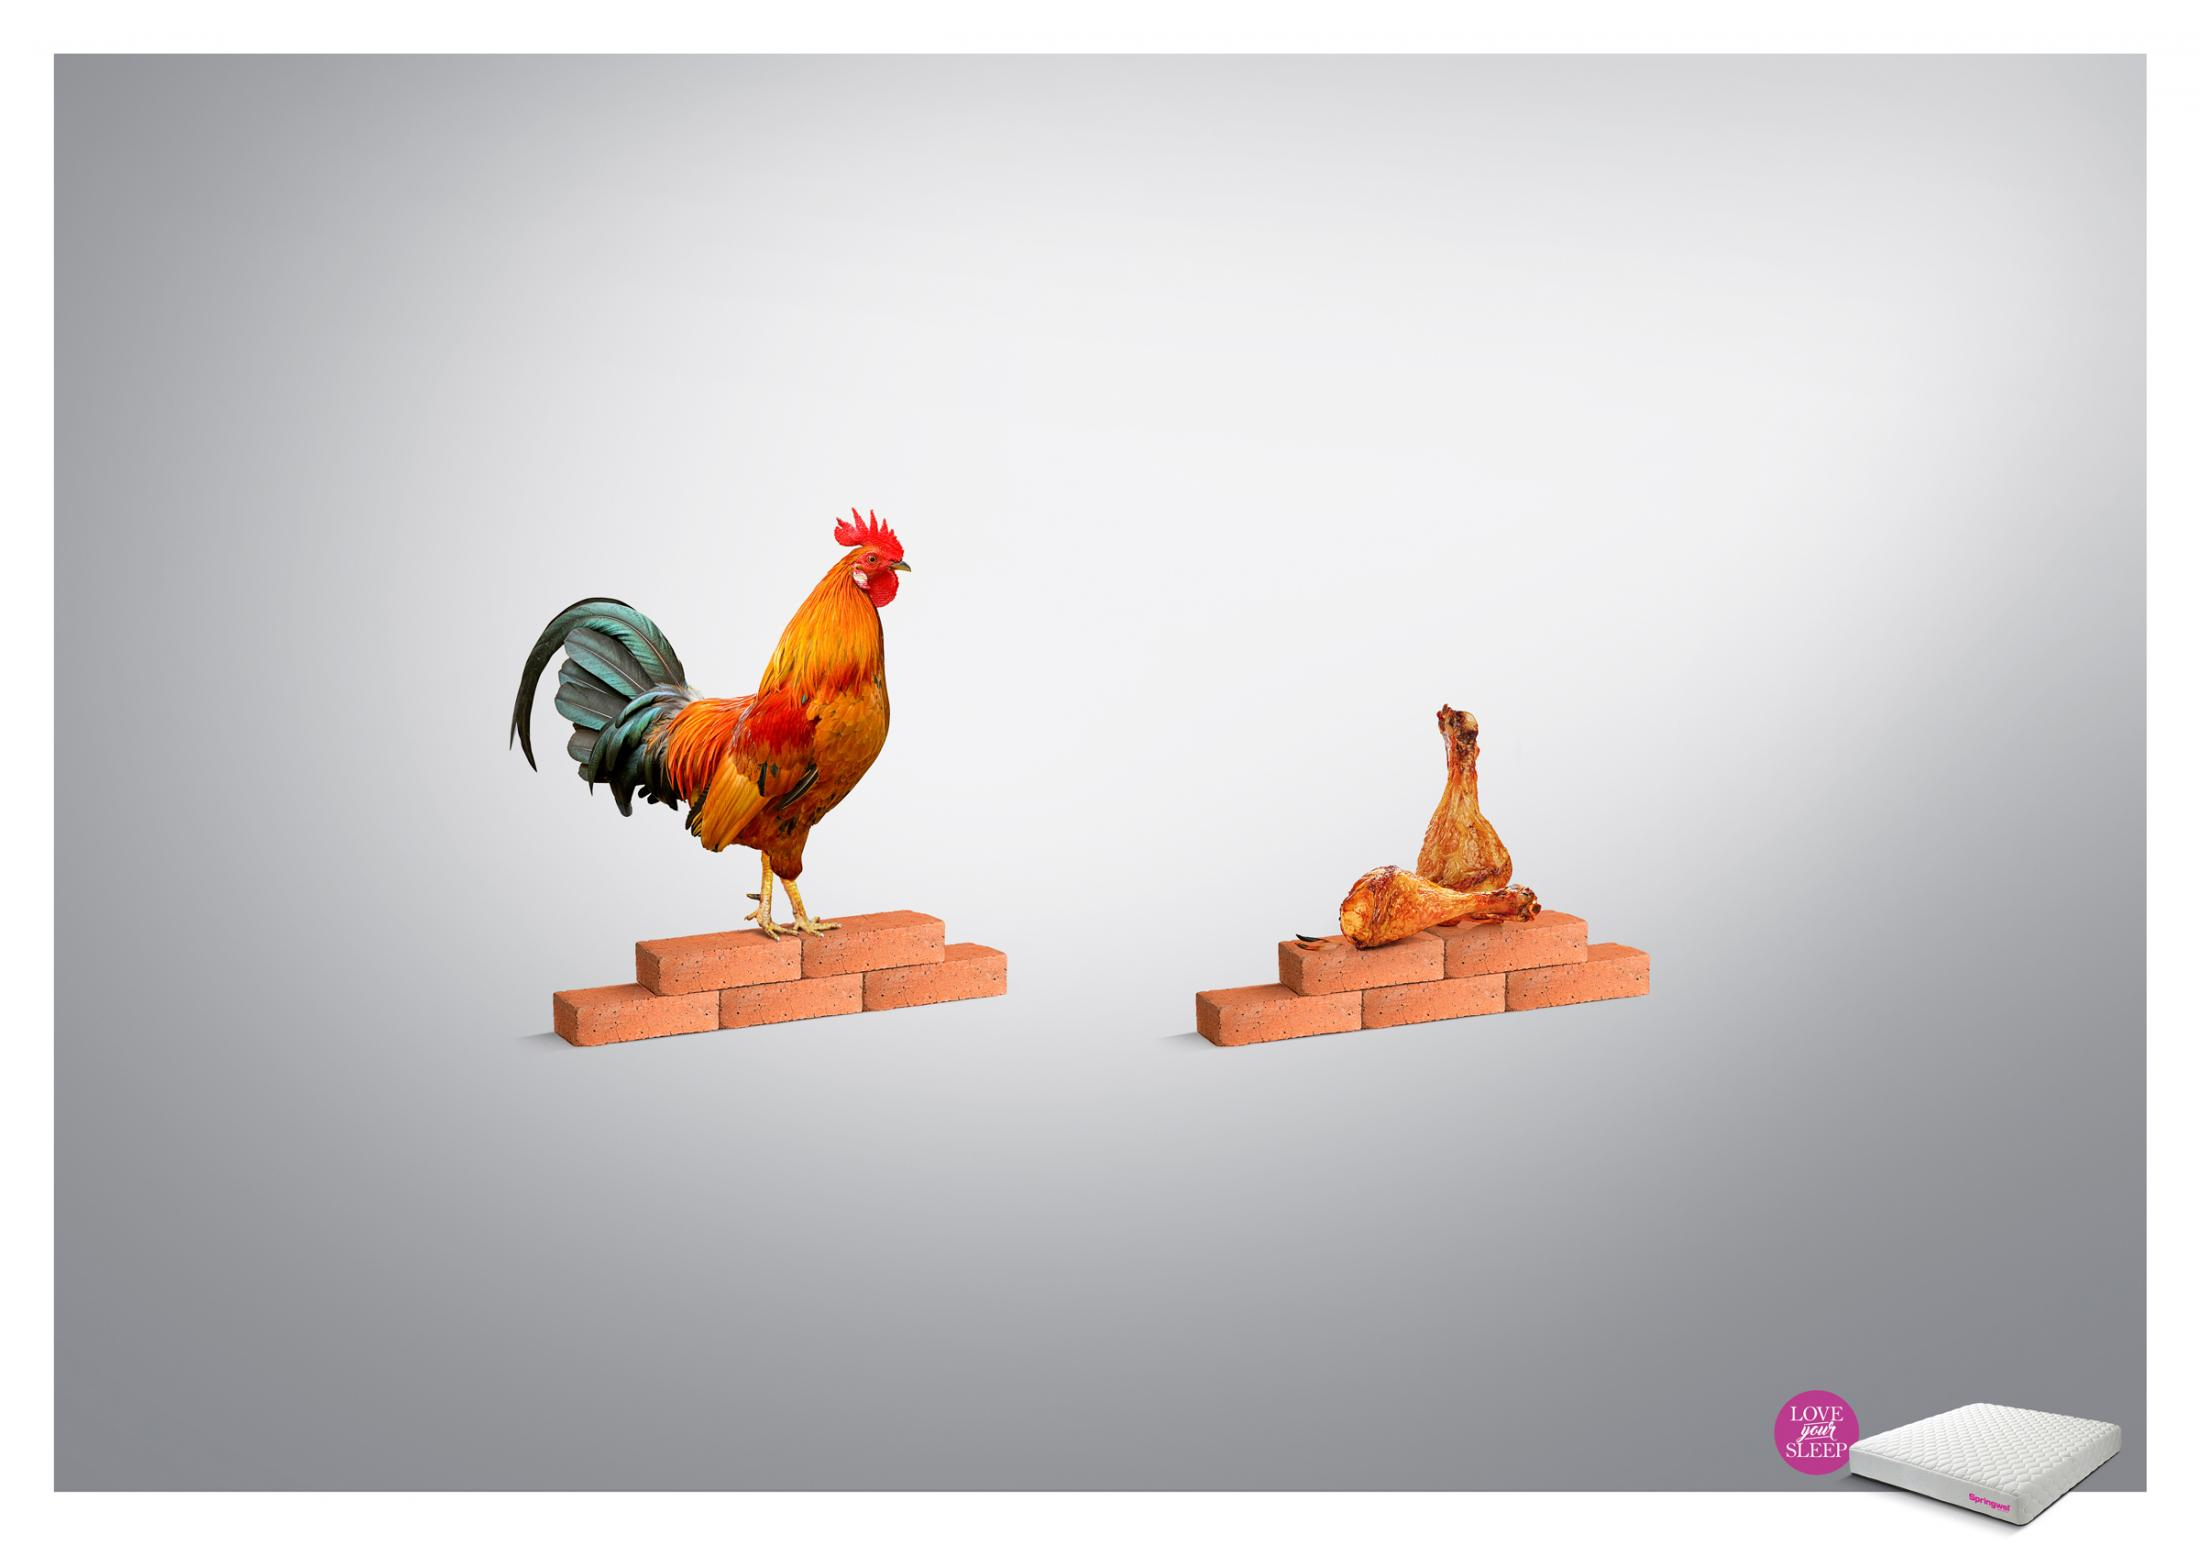 Springwel Print Ad - Love your Sleep - Rooster